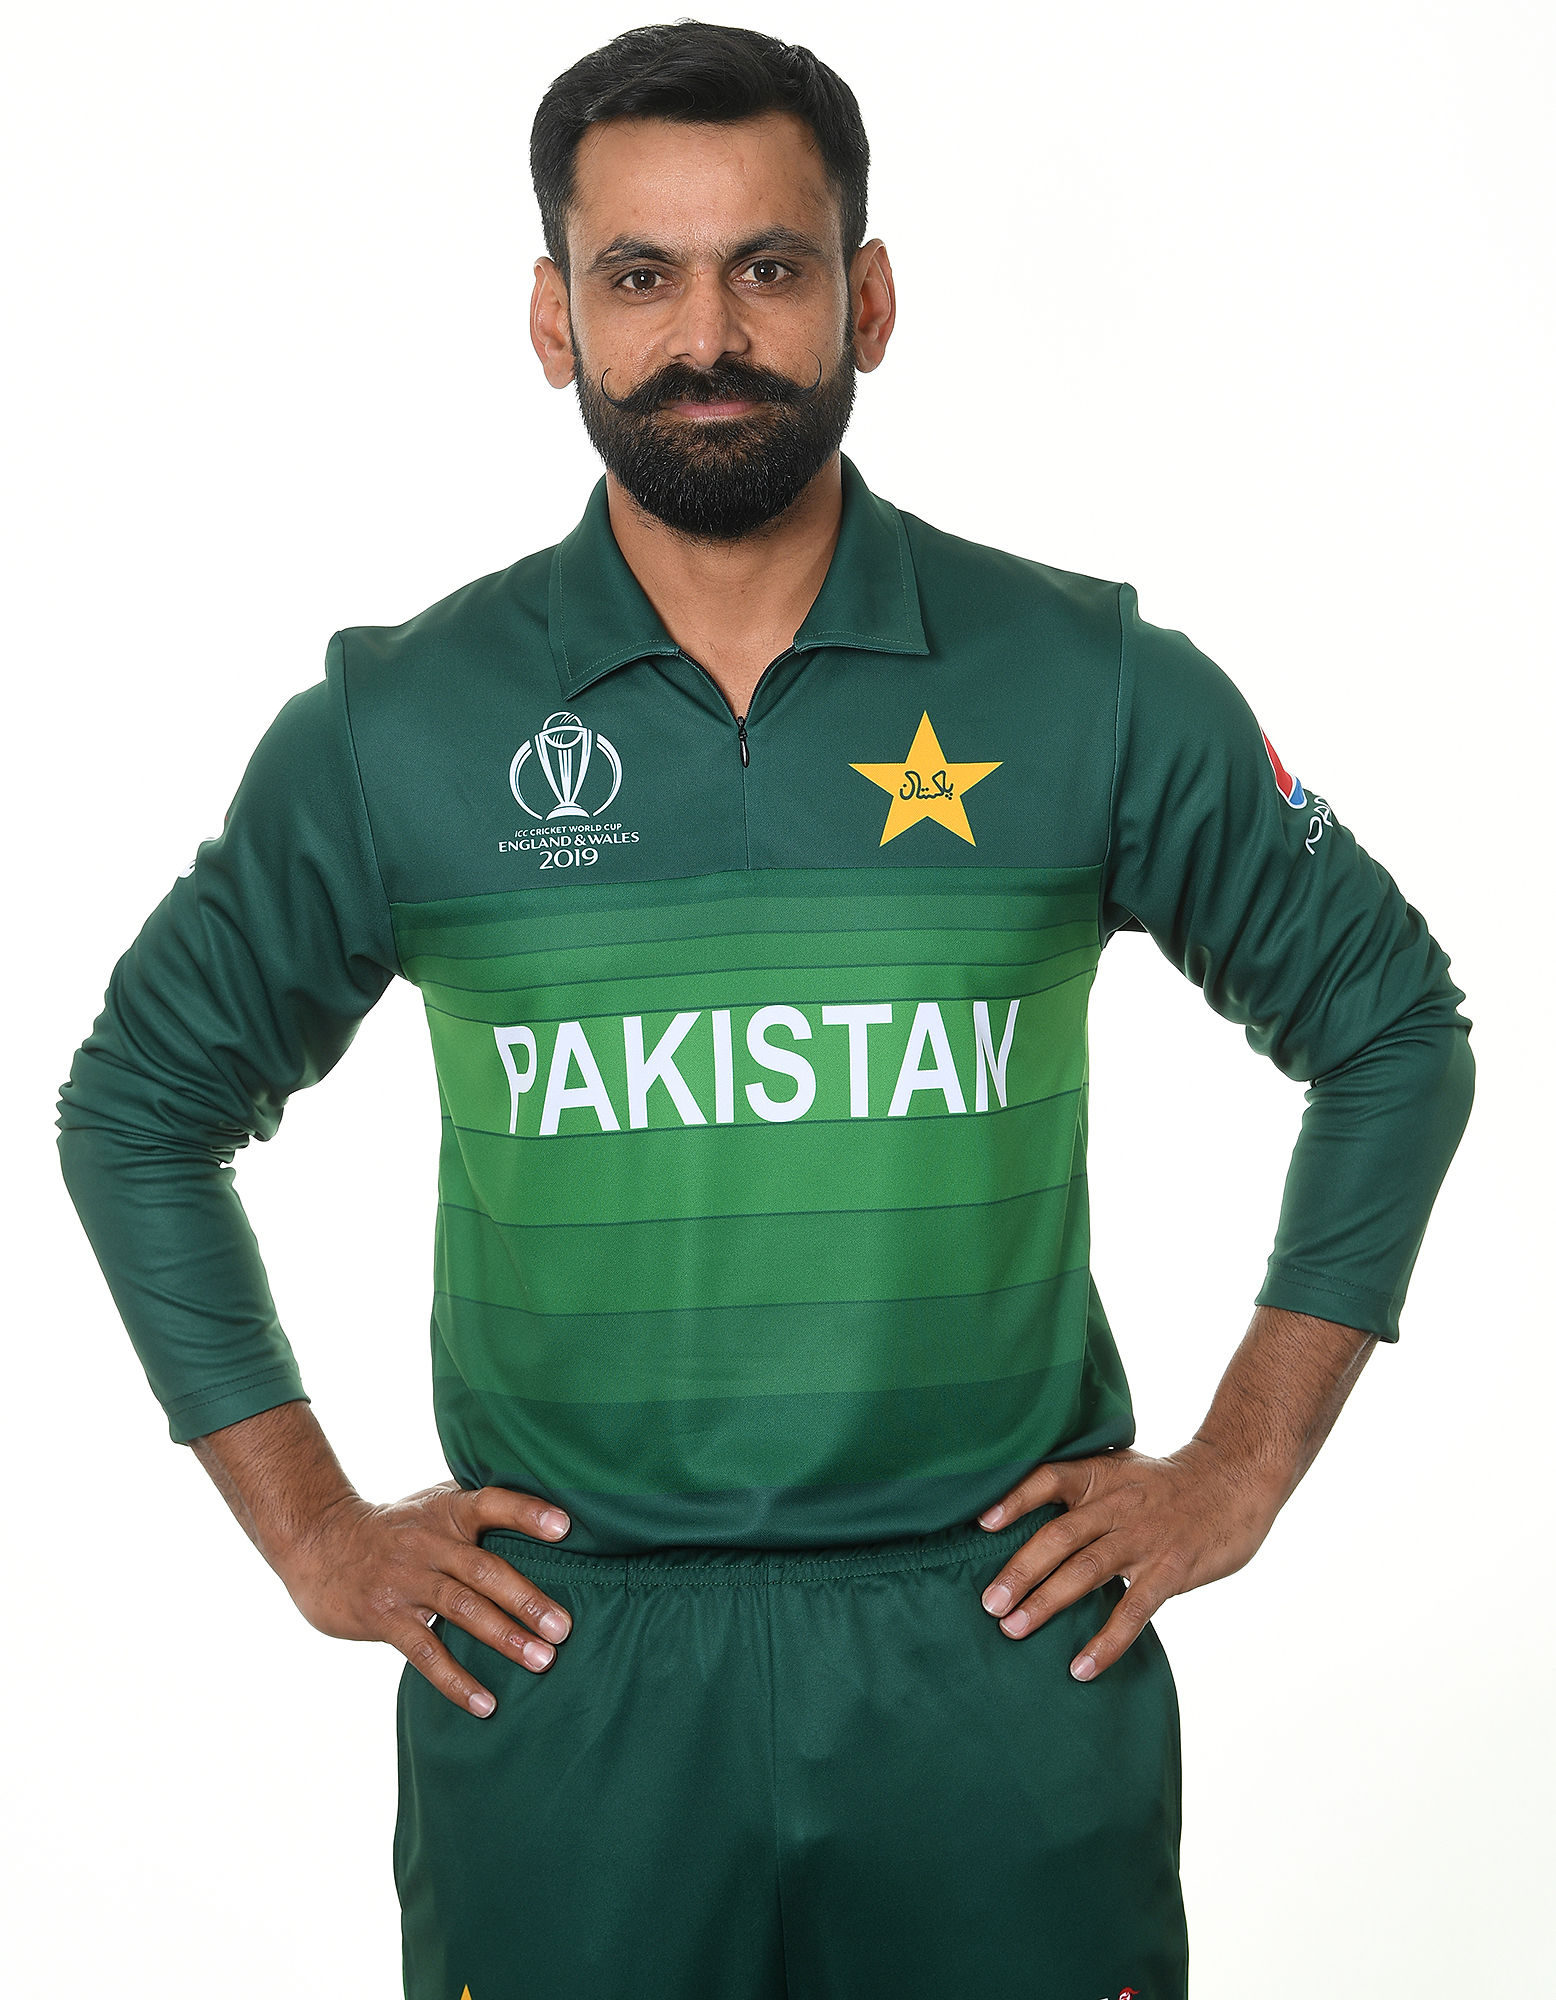 a7094b1dc Having flirted with a bright fluro green over the years, Pakistan have  stuck with a deeper, darker green at this World Cup, with some lighter  shades across ...